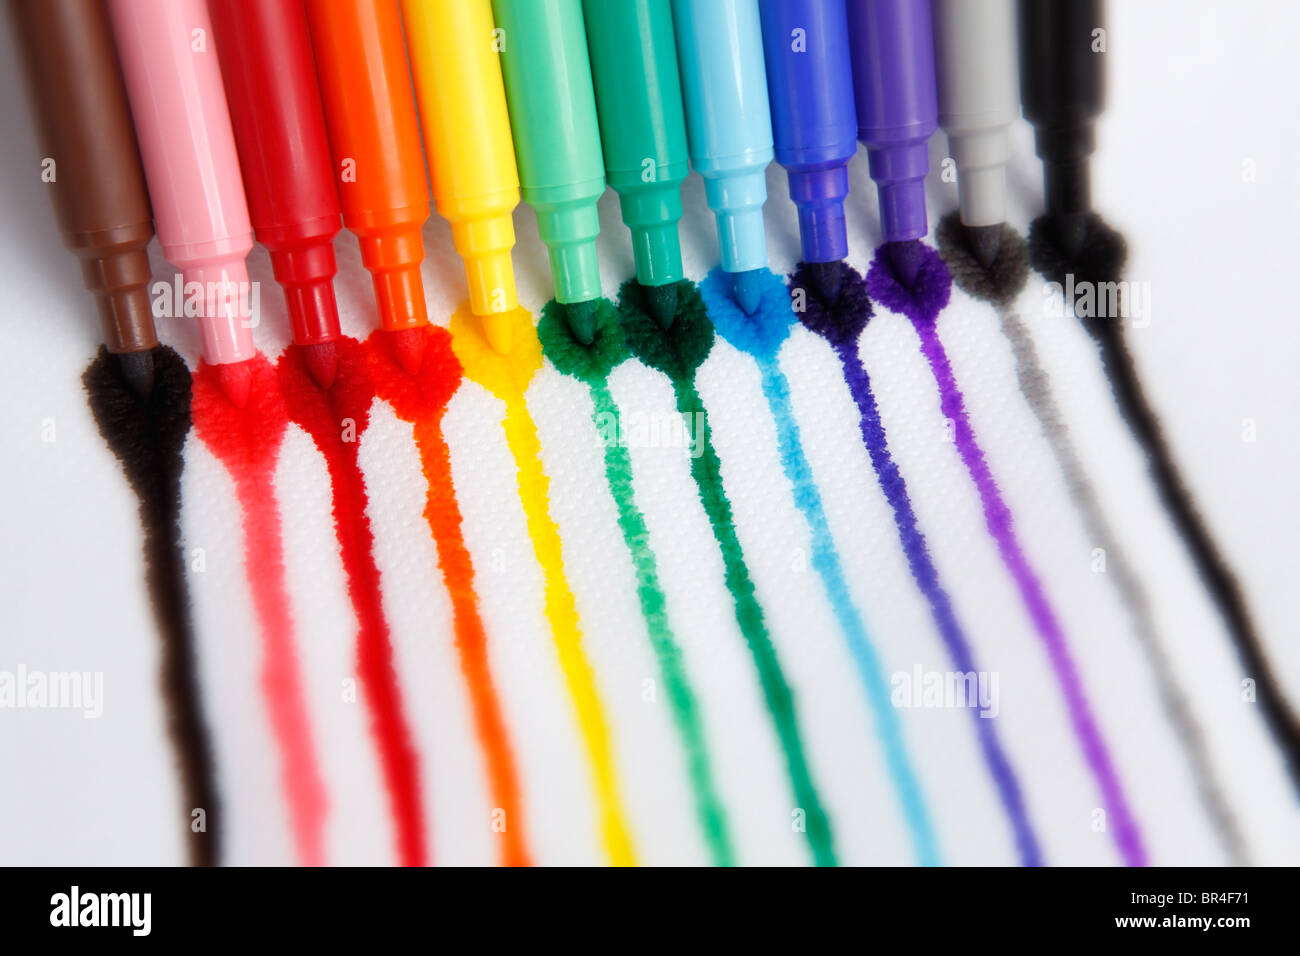 Colorful markers on white background. With beautiful vibrant colors, great for kids, color, school , design or print - Stock Image